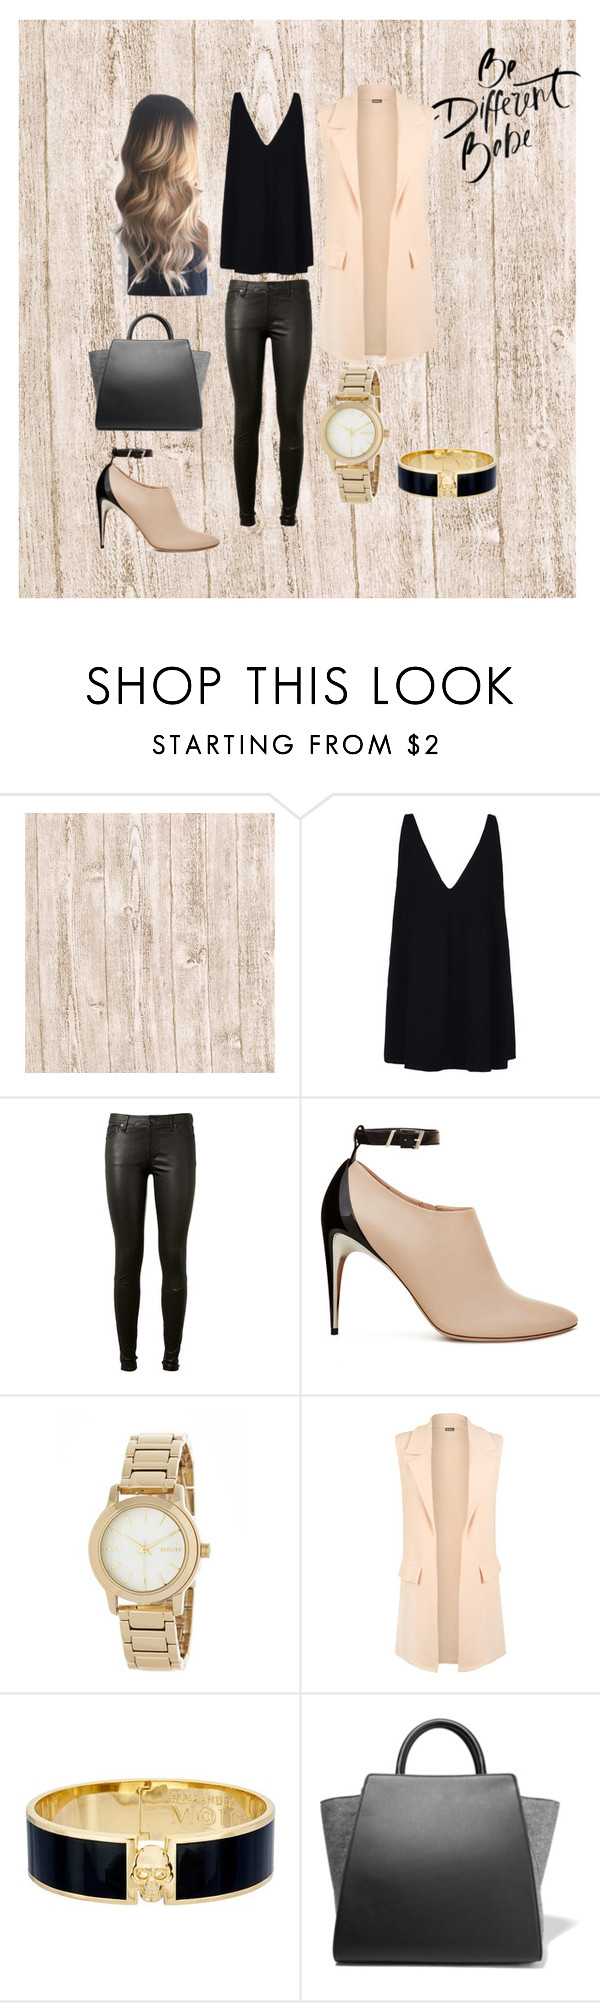 """""""Different babe"""" by jazzwild on Polyvore featuring moda, STELLA McCARTNEY, AG Adriano Goldschmied, DKNY, WearAll, Alexander McQueen y ZAC Zac Posen"""